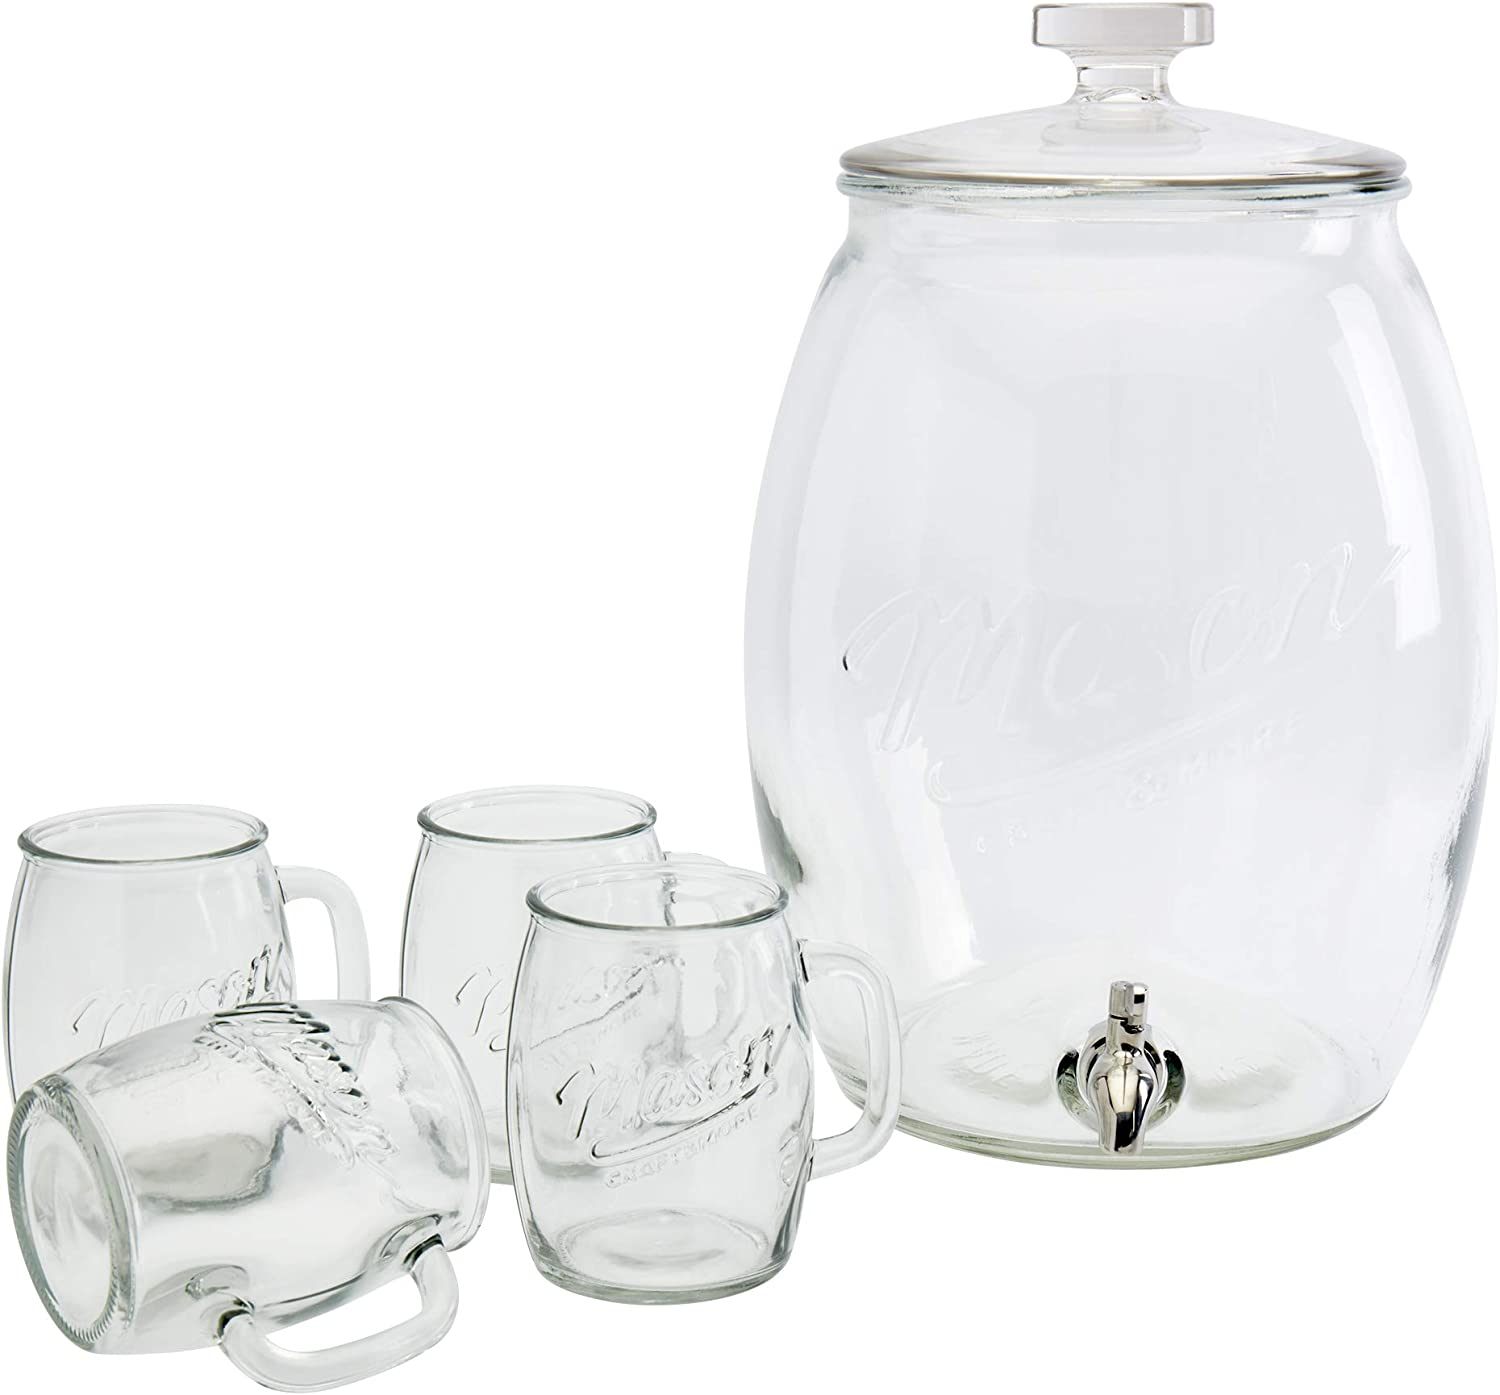 Mason Craft & More Drinkware Collection- Durable Glass Leak Proof Beverage Glassware, 5 Piece 4 Gallon Belly Dispenser Set